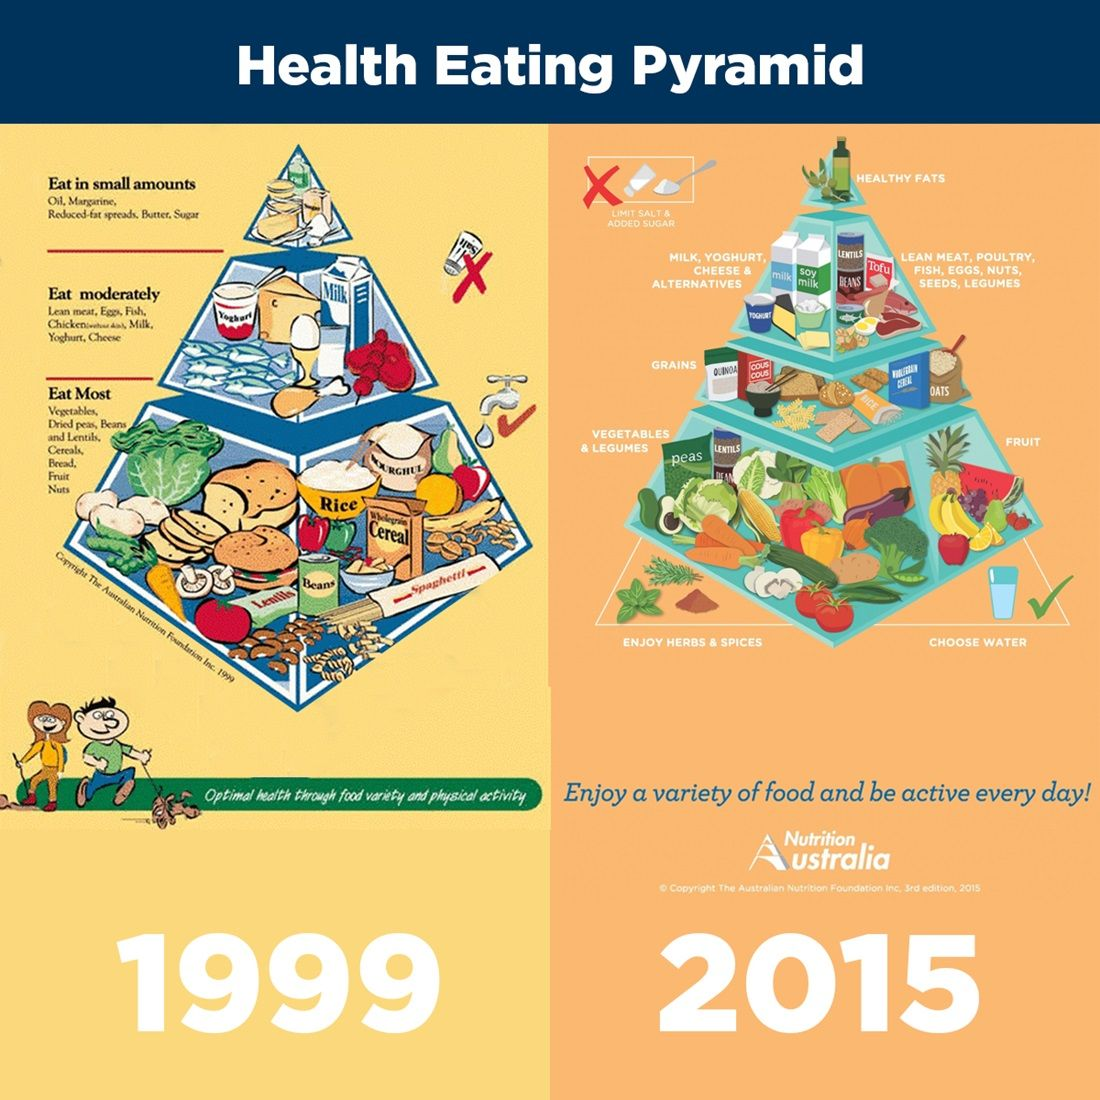 Health Eating Pyramid To